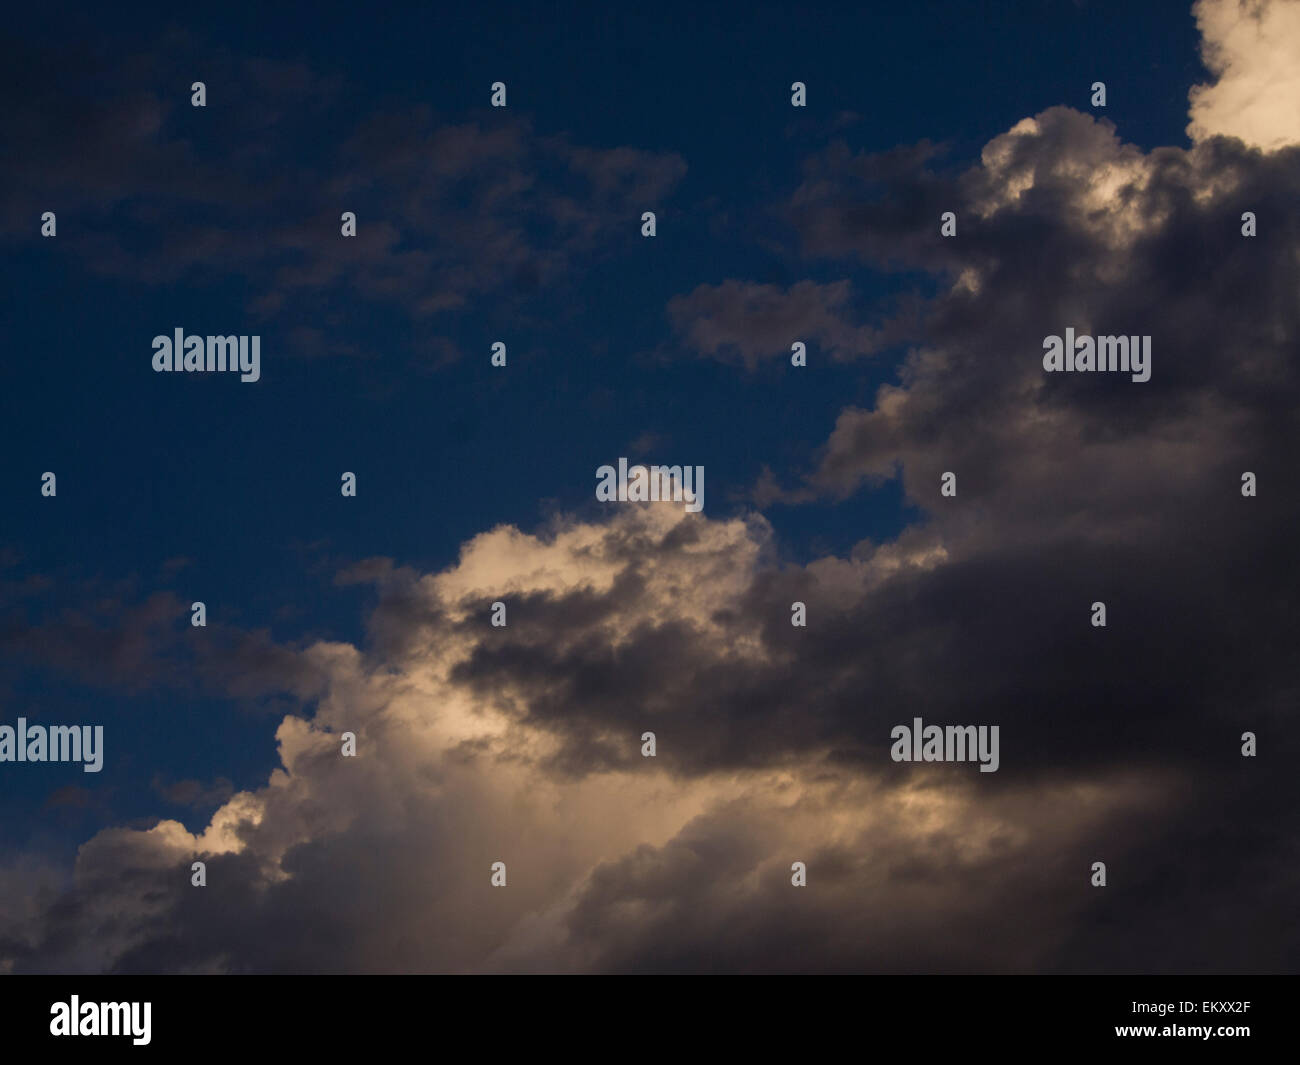 Cloud formation after the storm can symbolize many things, dreaming, past events, challenges. - Stock Image